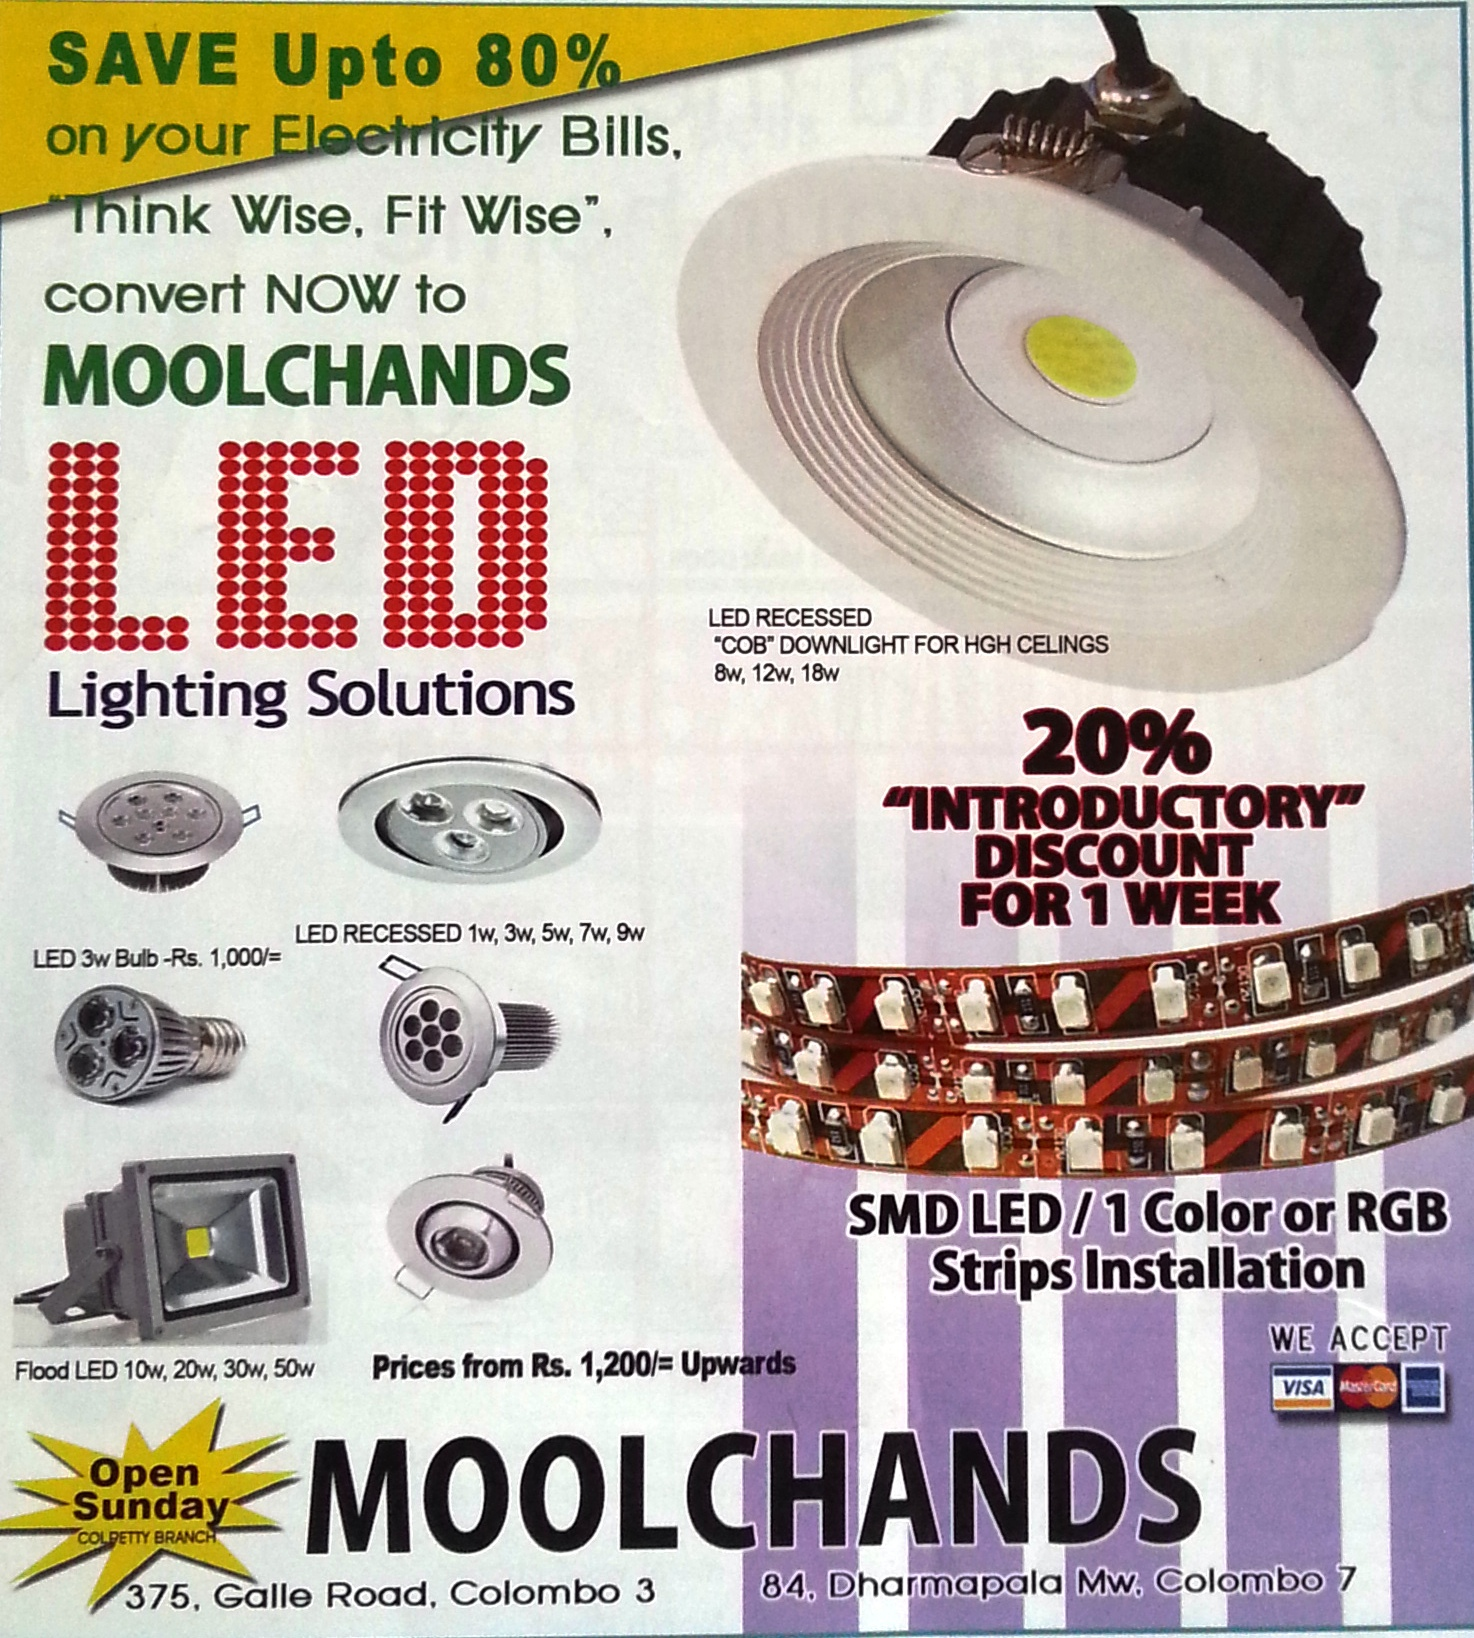 20% Discounts for LED Lighting Solutions for this Week ...